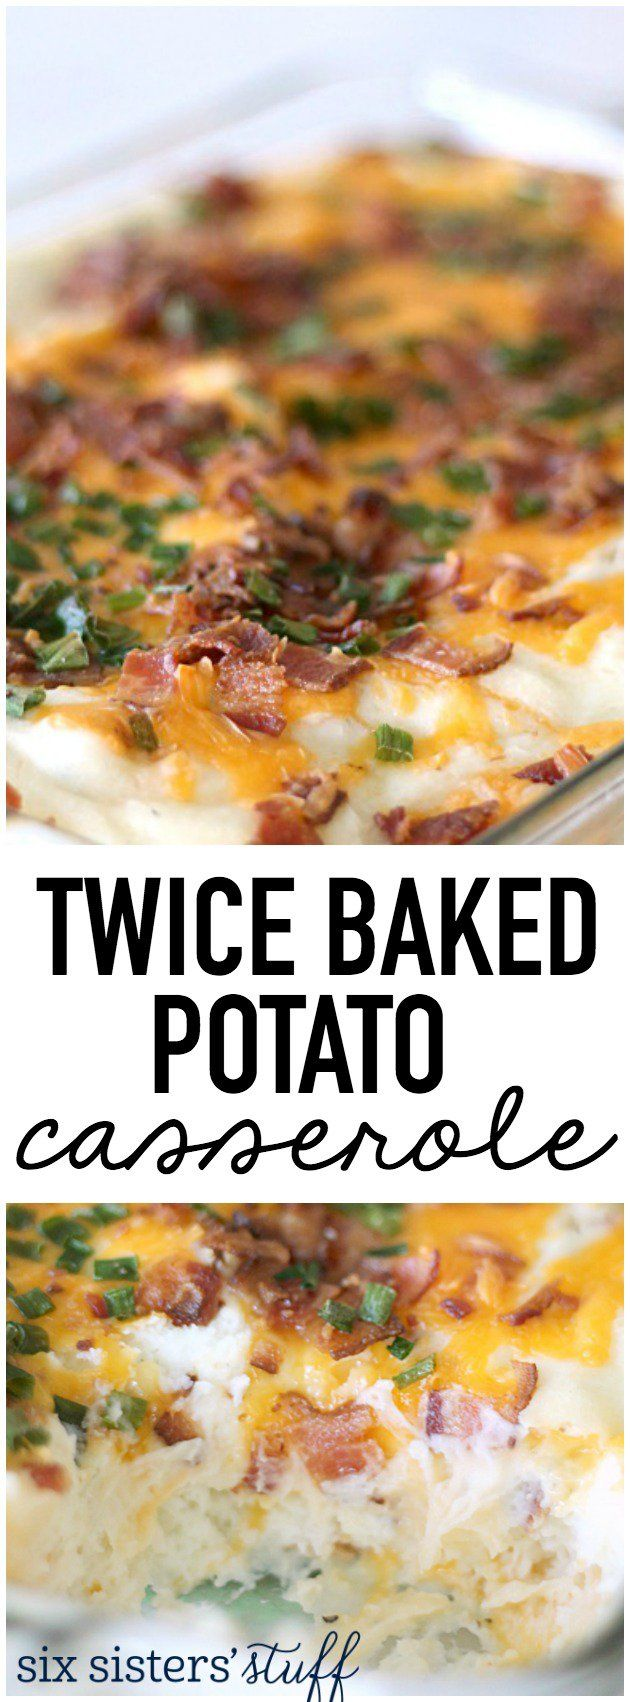 This Twice Baked Potato Casserole from SixSistersStuff.com is the most AMAZING…